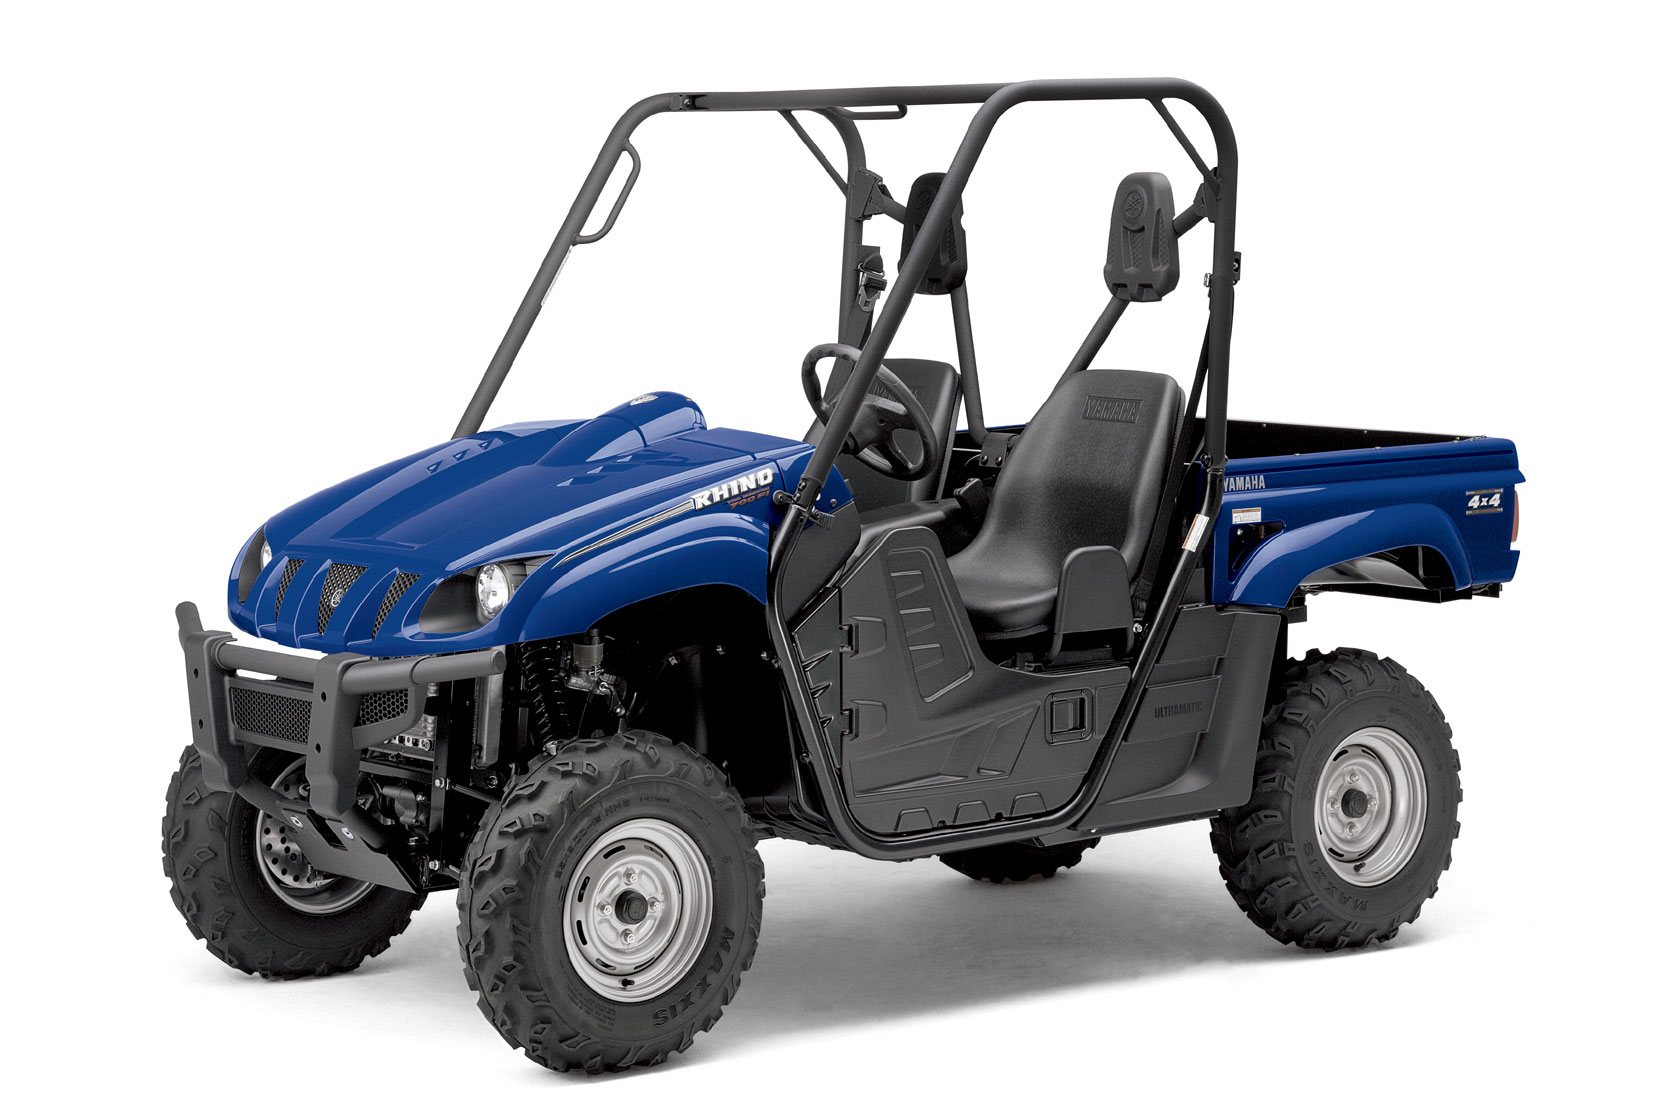 2006 polaris sportsman 800 wiring diagram images polaris ranger 700 xp manual yamaha wiring diagram ignition wiring